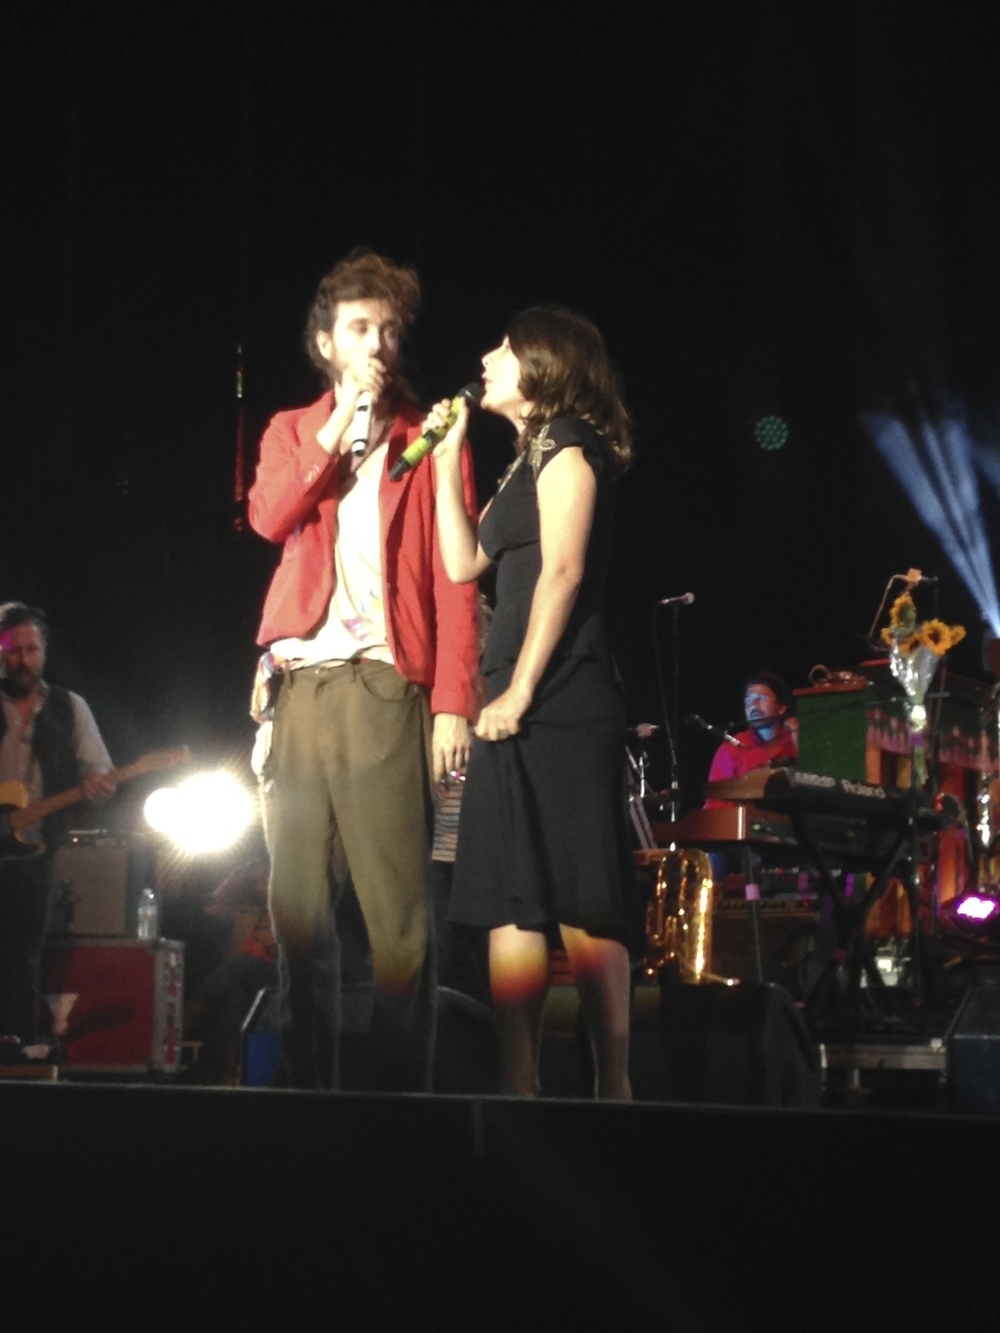 Edward Sharpe and the Magnetic Zeros at America's Cup Pavilion